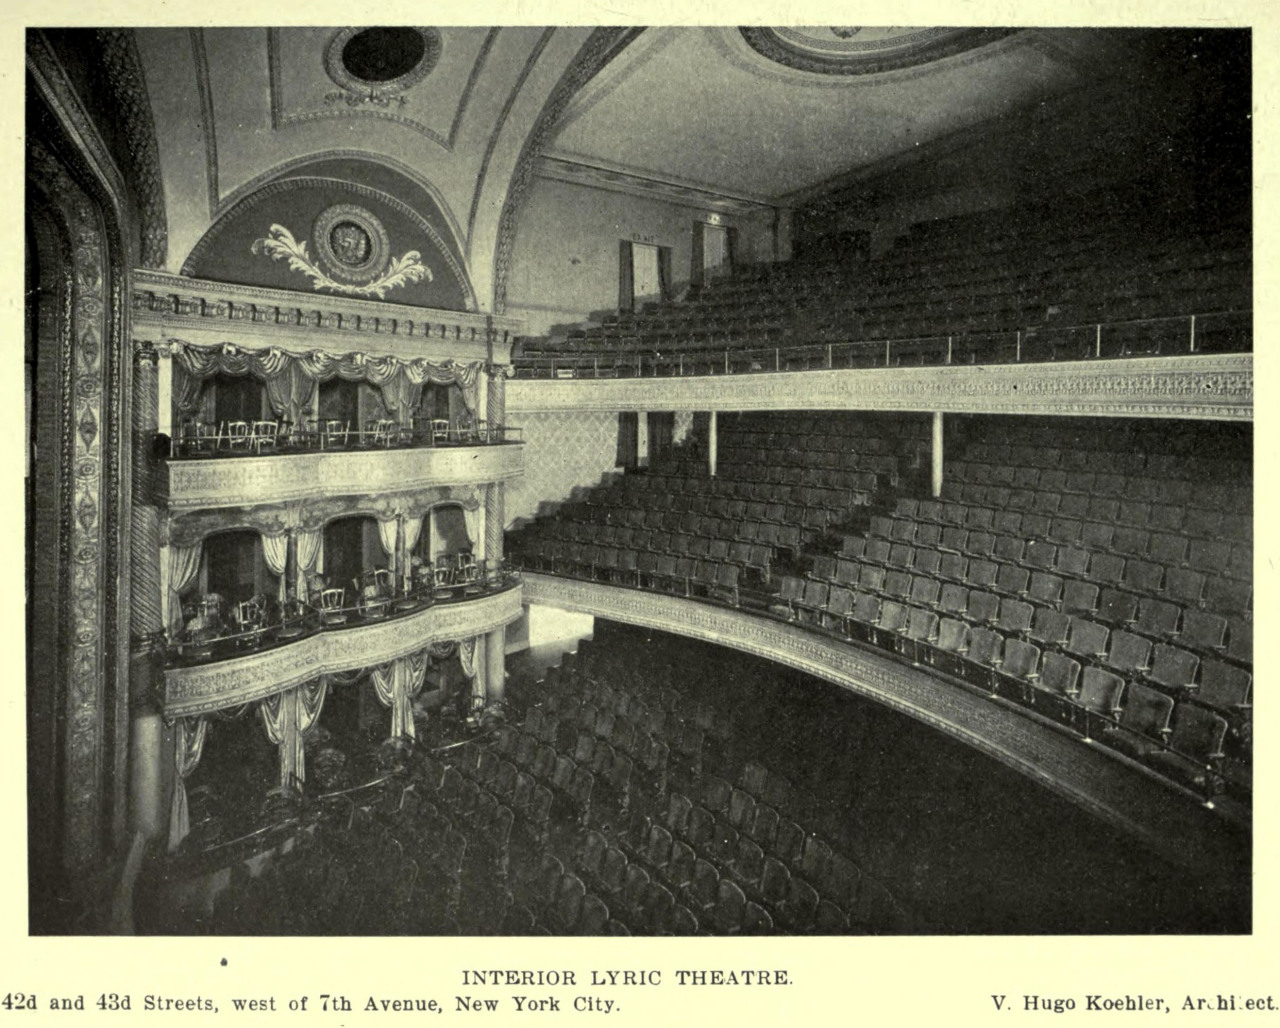 Inside the Lyric Theatre, New York City